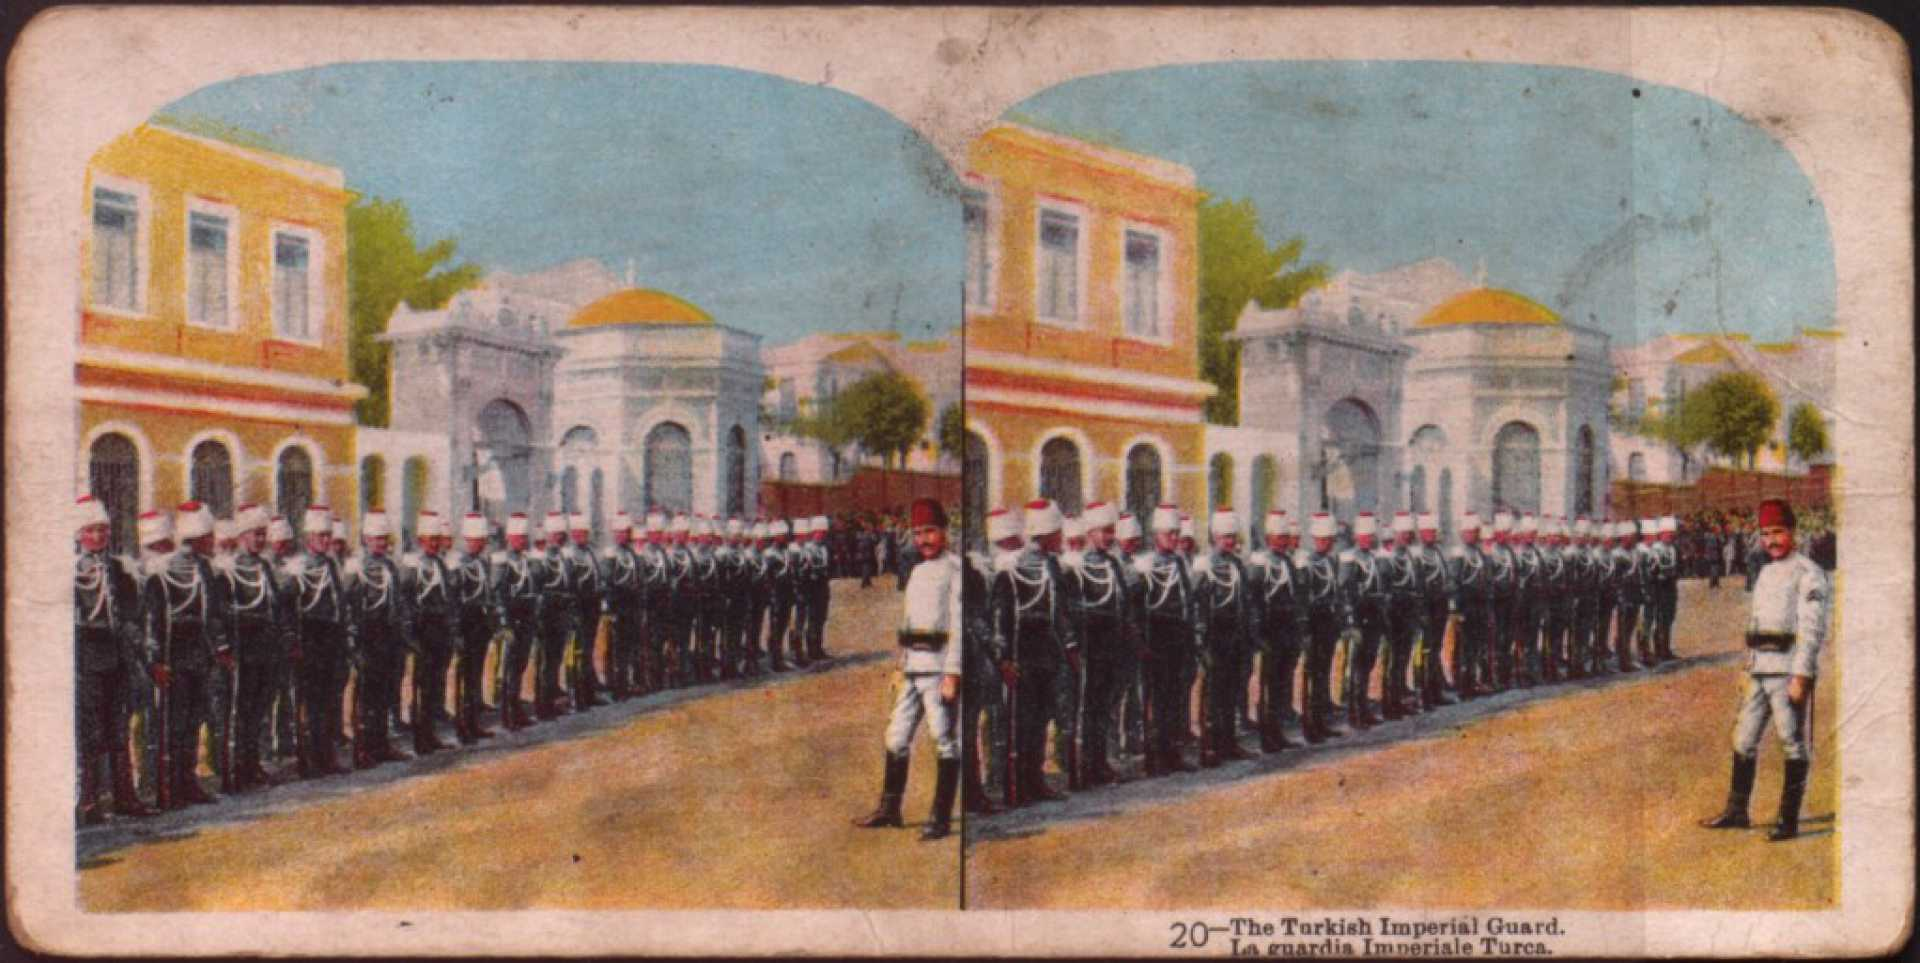 The Turkish Imperial Guard.